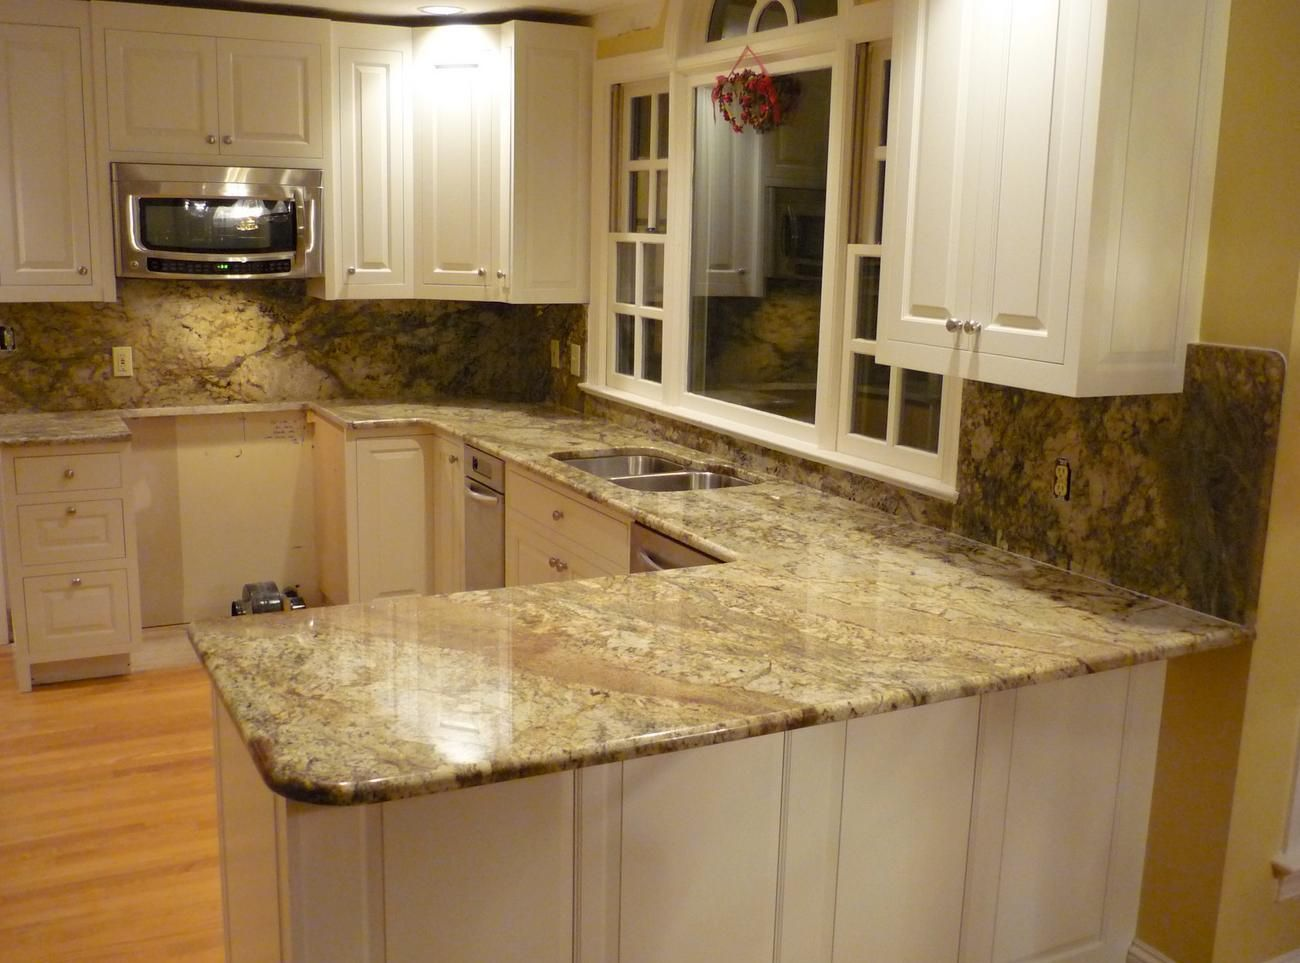 glue granite countertops how saura v best kitchen dutt contemporary countertop awesome stones to for